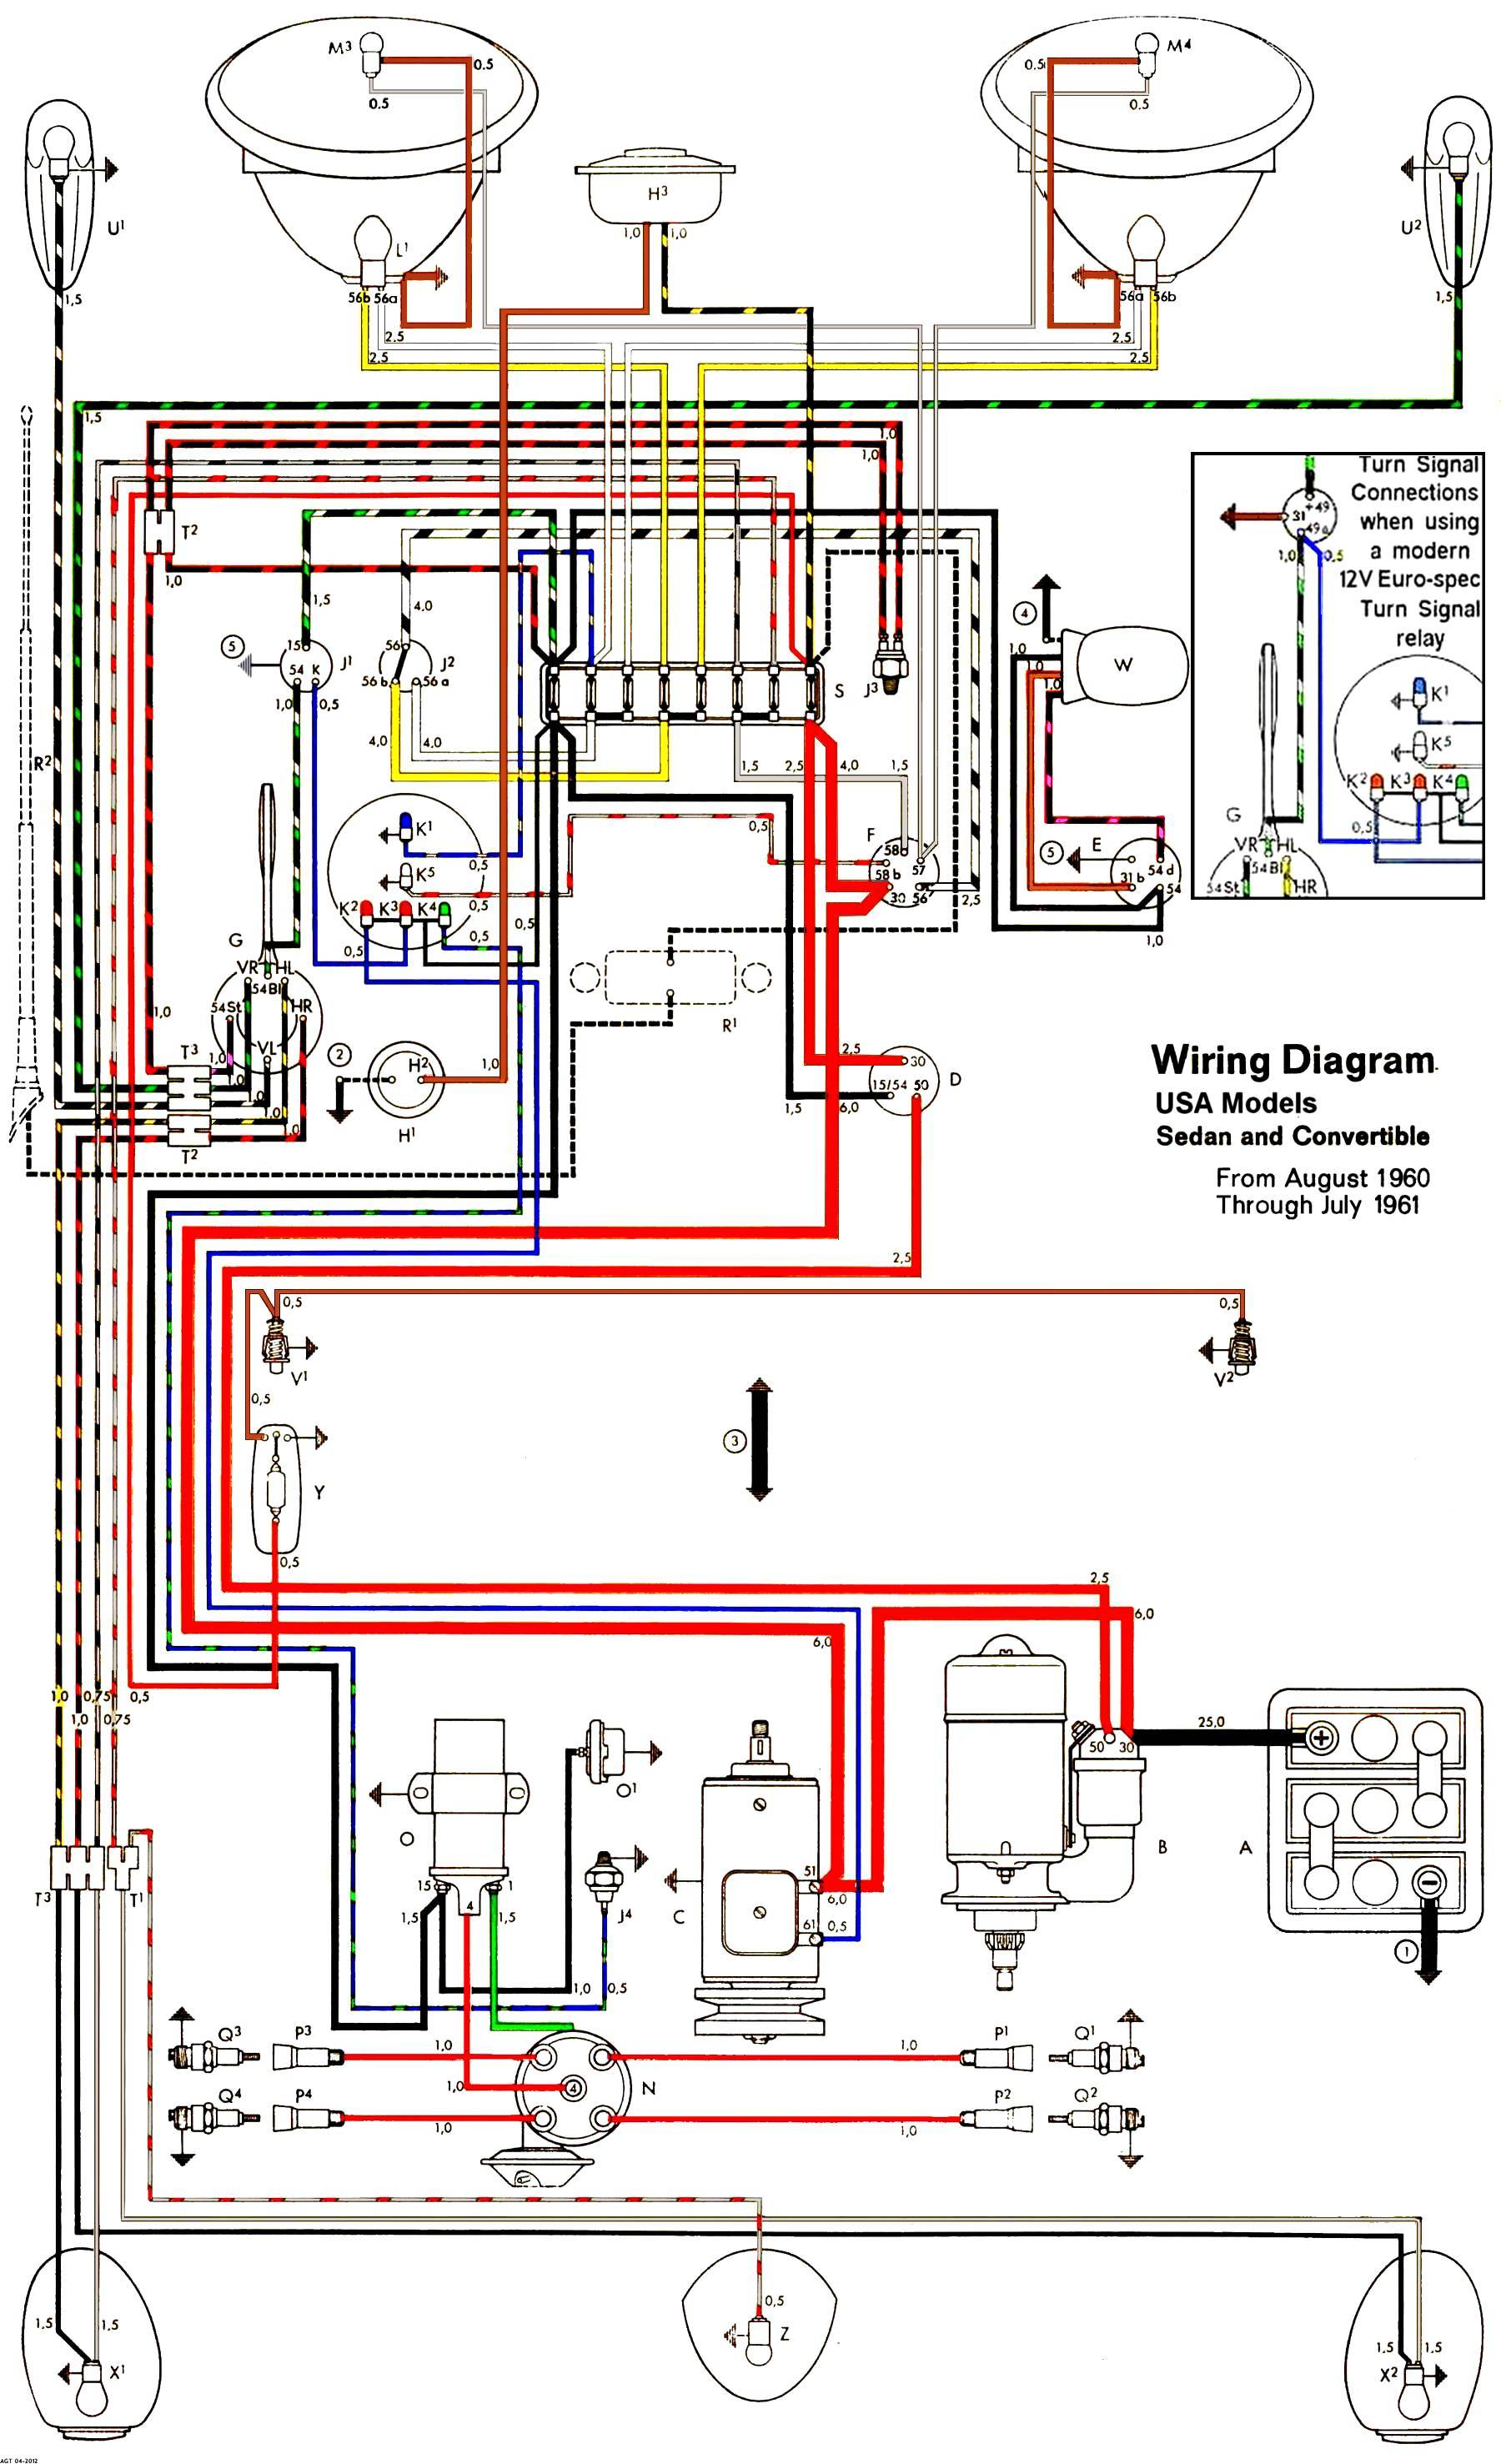 71 Vw Beetle Wiring Diagram | Wiring Diagram  Vw Type Coil Wiring Diagram on vw bus wiring diagram, type 1 vw engine diagram, vw bug wiring diagram, vw gti wiring diagram, vw r32 wiring diagram, 72 vw wiring diagram, vw thing wiring diagram, vw 1600 engine diagram, jaguar e type wiring diagram, vw engine wiring diagram, vw type 2 wiring diagram, air cooled vw wiring diagram, 1965 vw wiring diagram, vw type 4 wiring diagram, vw jetta wiring diagram, vw alternator conversion wiring diagram, vw ignition wiring diagram, 1973 vw wiring diagram, 1974 vw engine diagram, 68 vw wiring diagram,